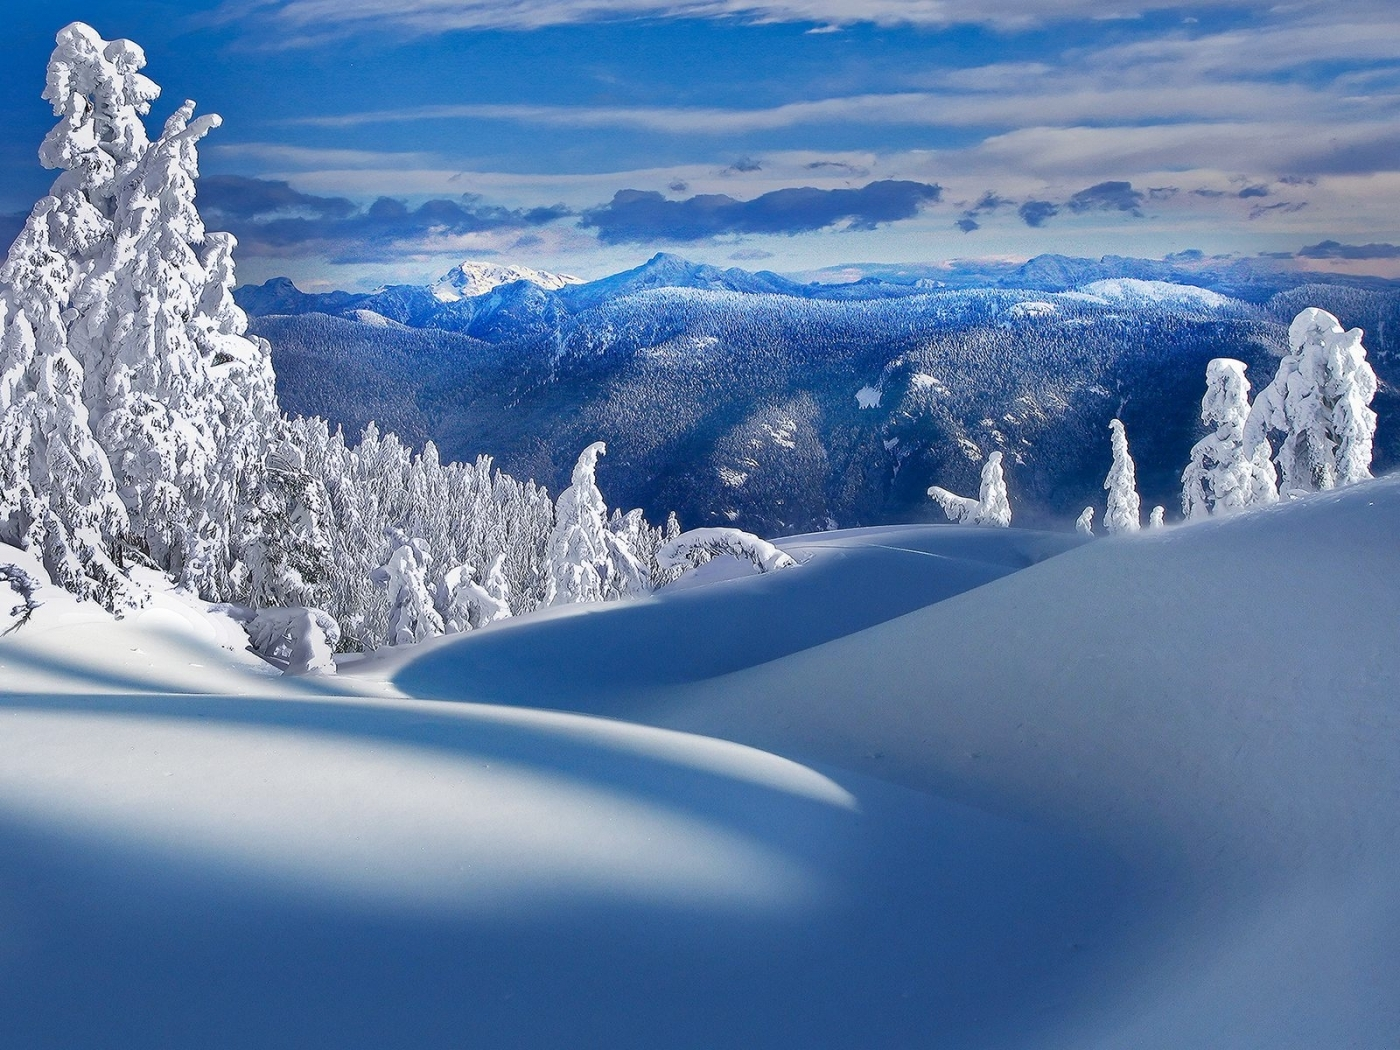 45442 download wallpaper Landscape, Winter, Snow screensavers and pictures for free